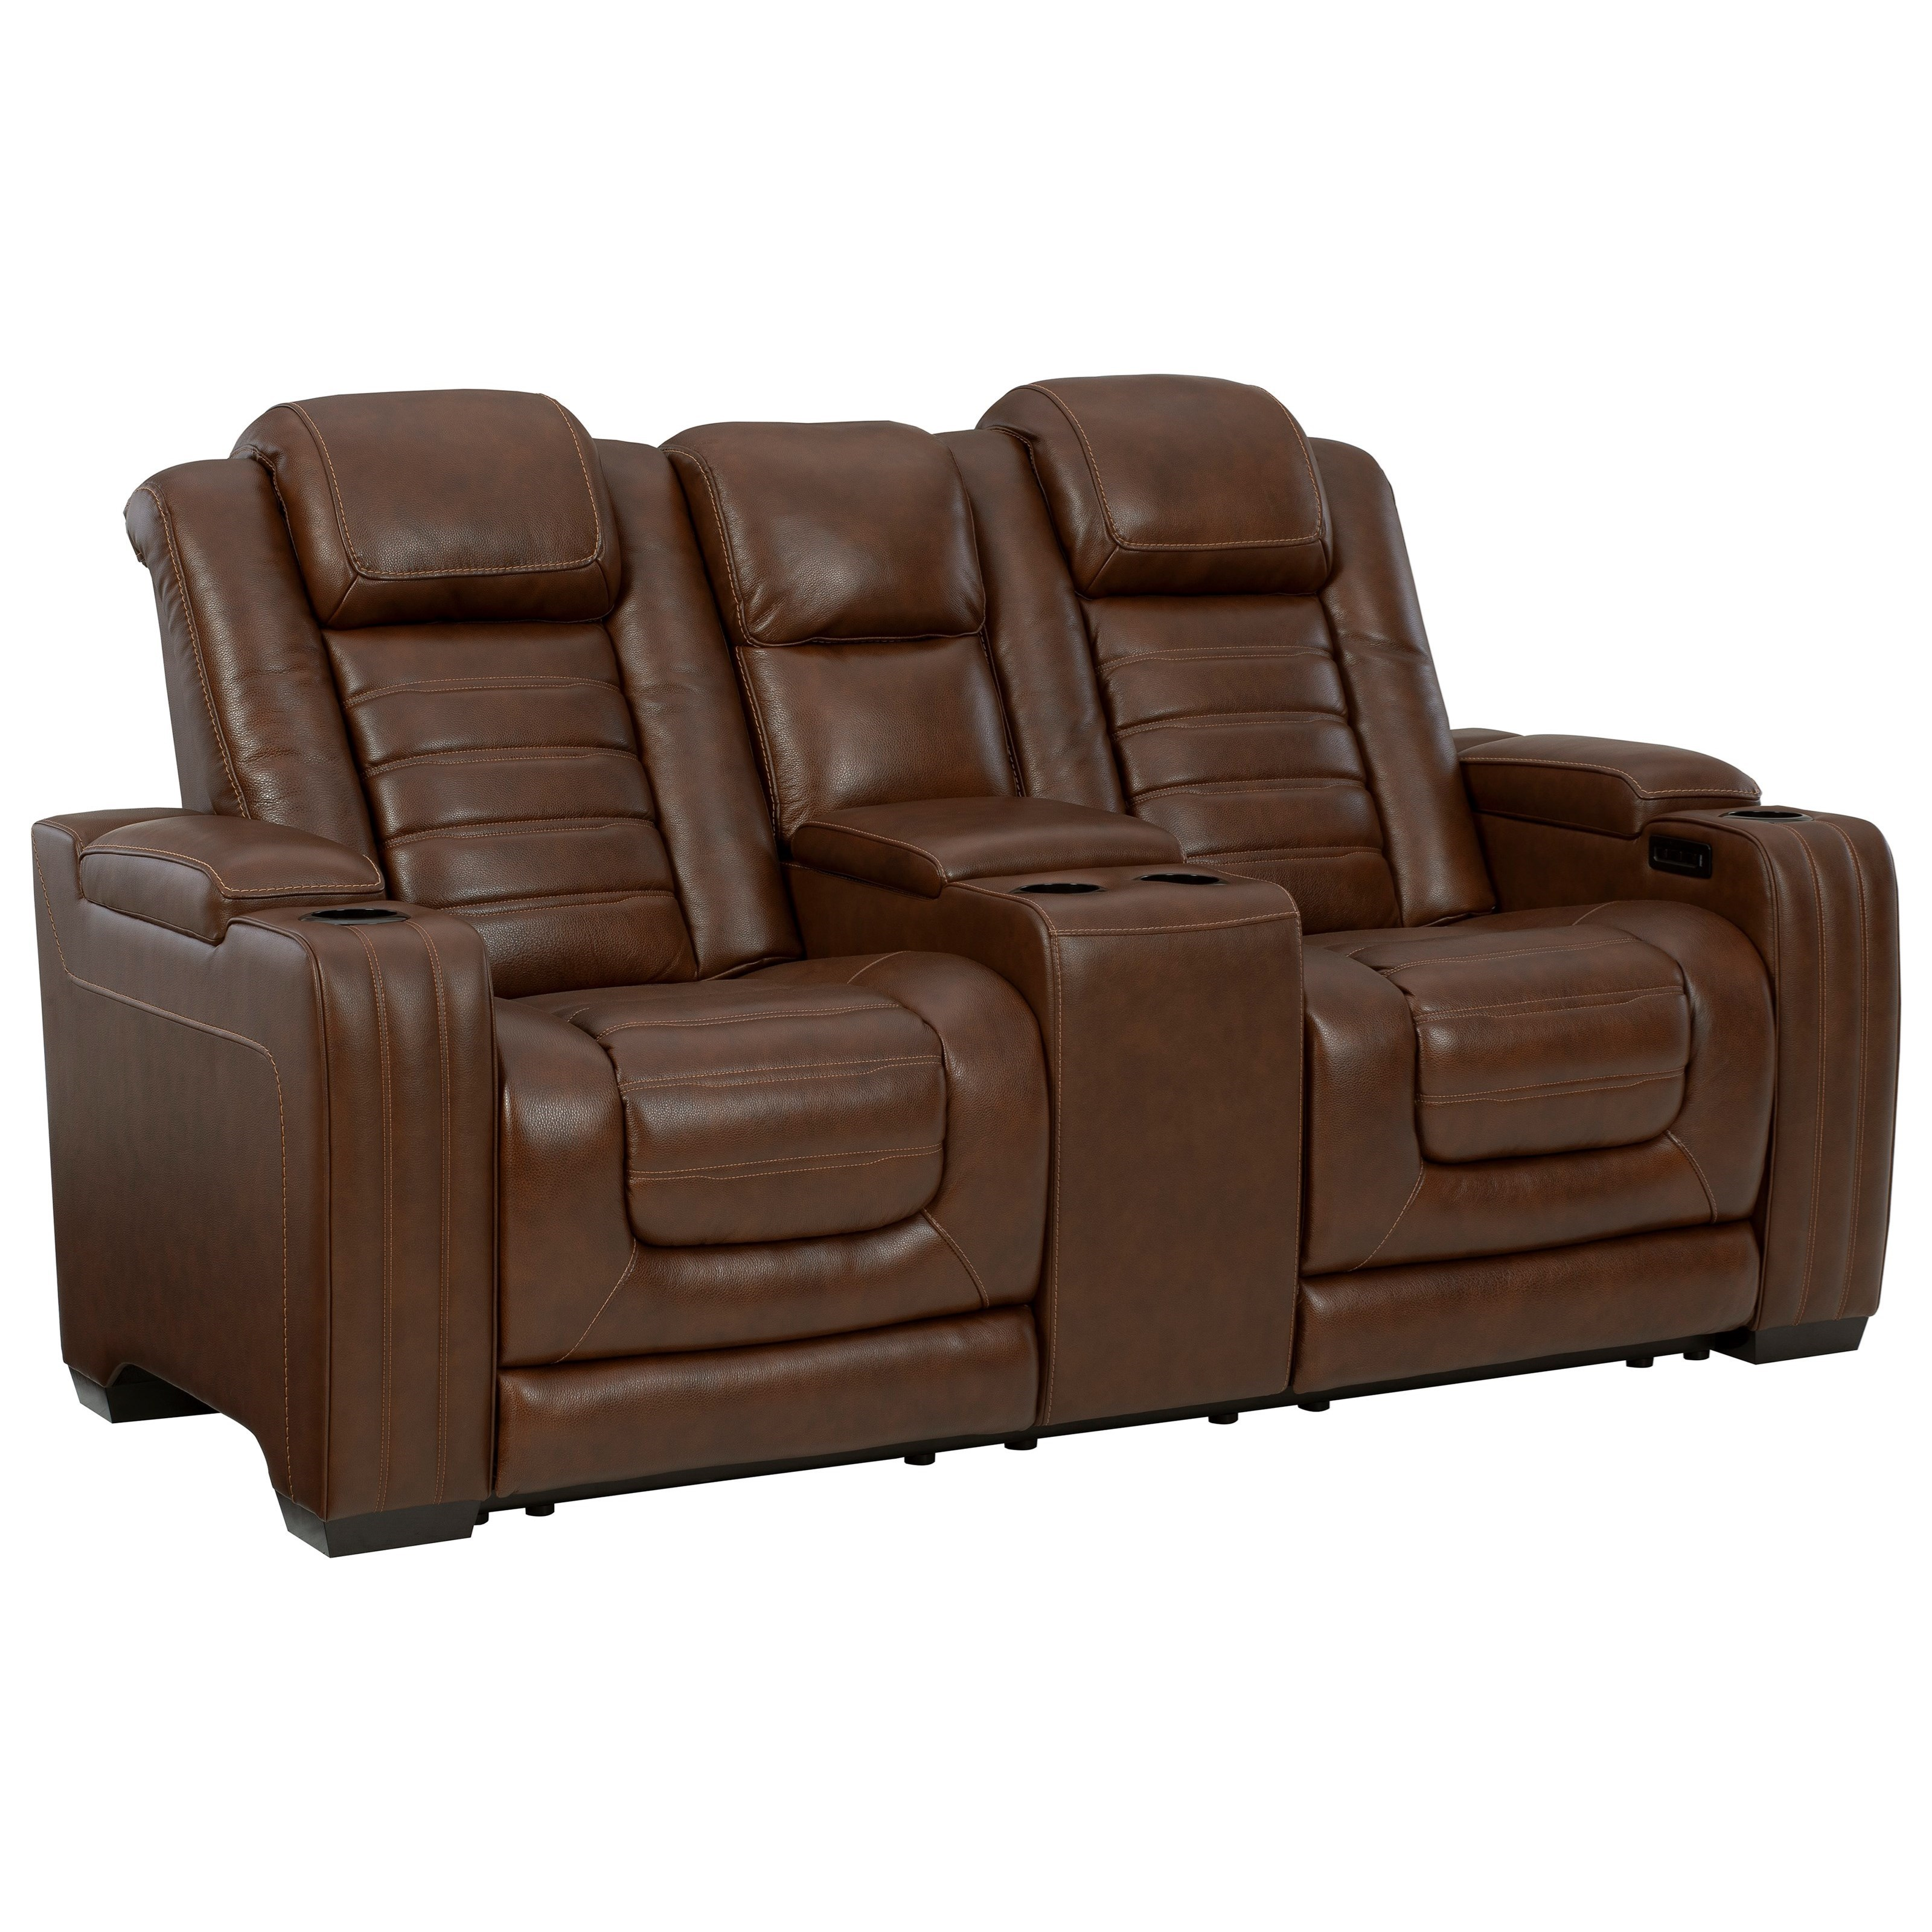 Backtrack Power Reclining Loveseat by Signature Design by Ashley at Lapeer Furniture & Mattress Center